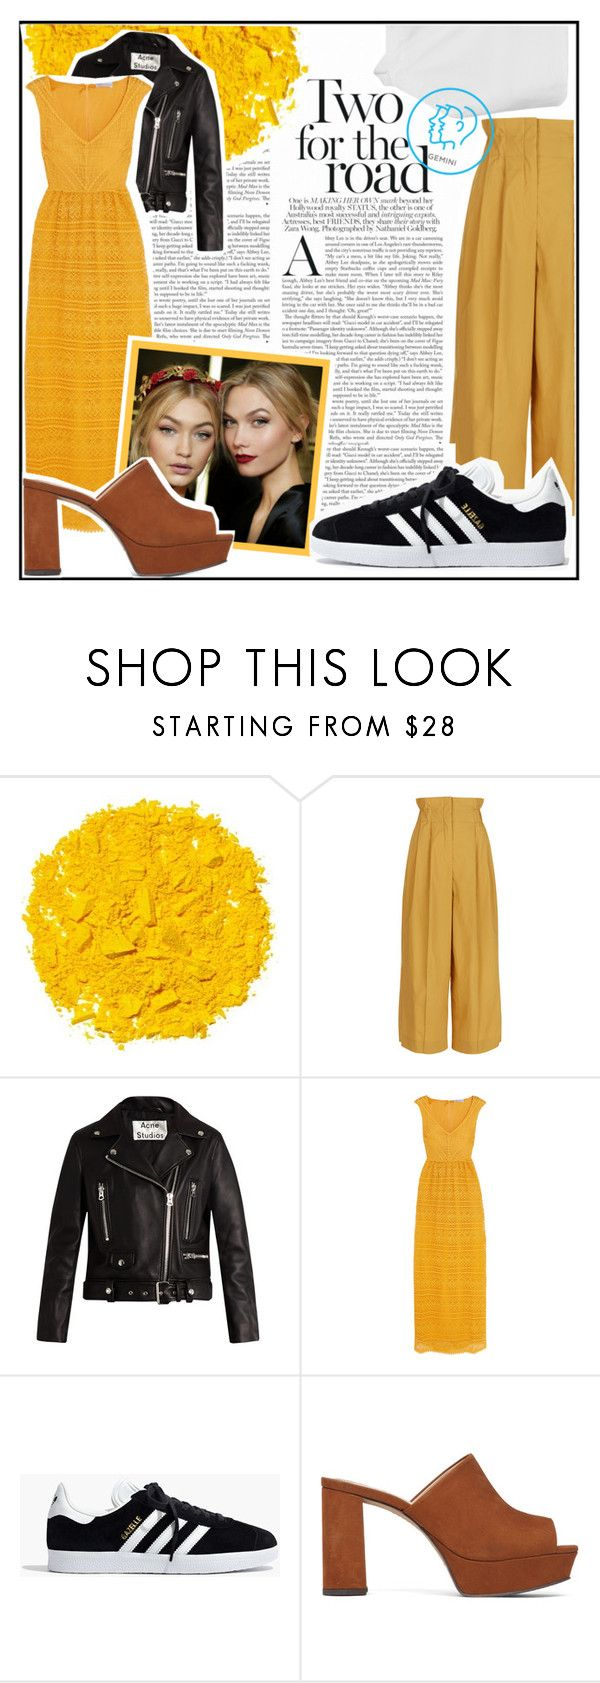 """GEMINI"" by lolveme on Polyvore featuring Illamasqua, Sonia Rykiel, Acne Studios, RED Valentino, Madewell and Vince Camuto"